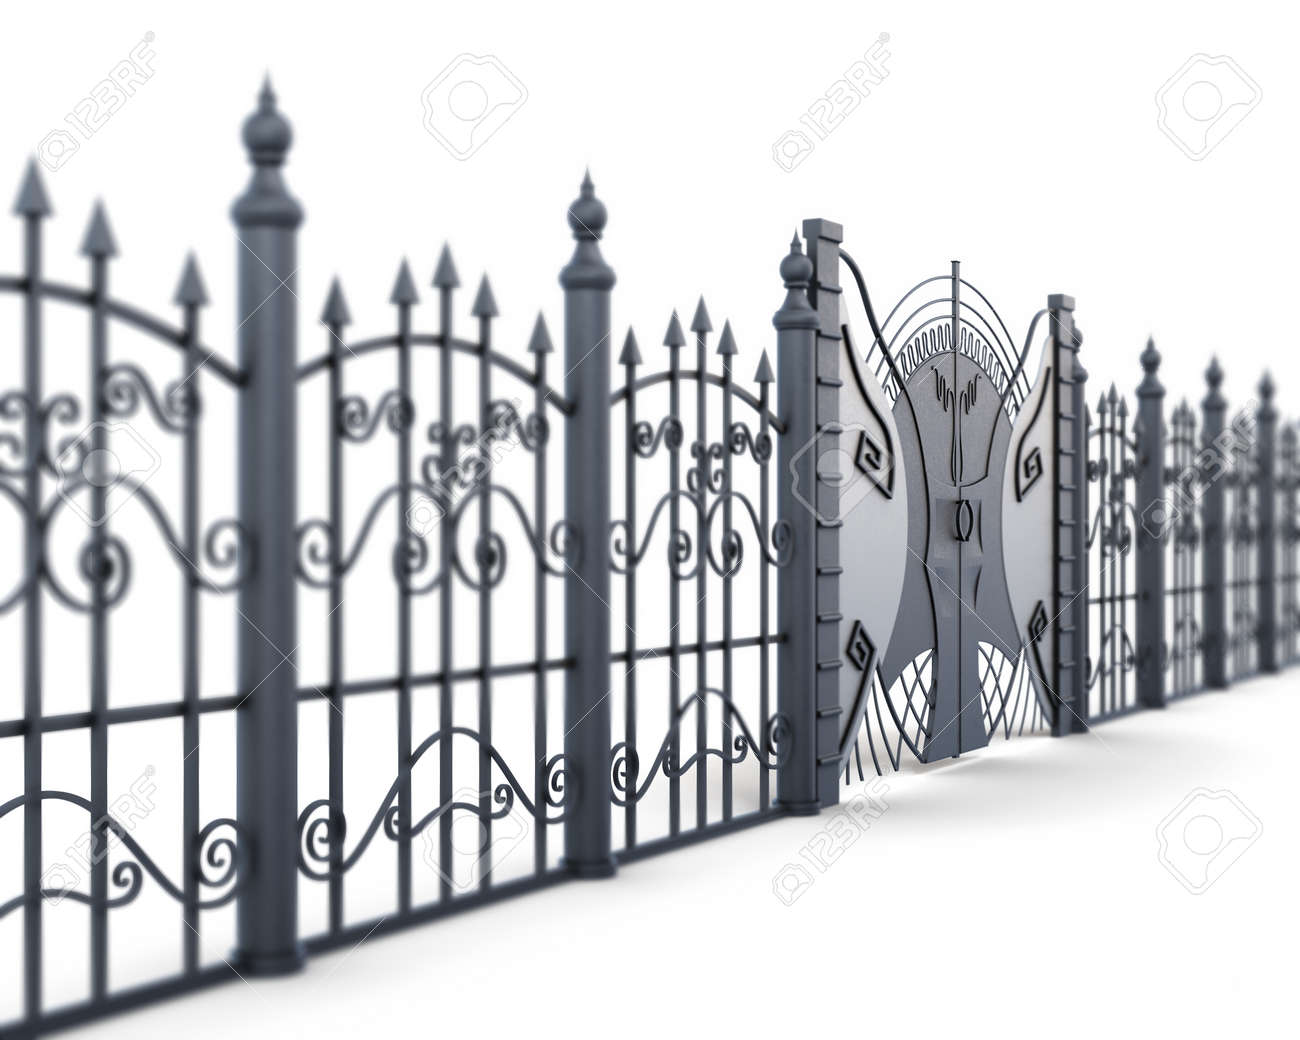 Metal Fence And Gate On A White Background View Angle 3d Rendering Stock Photo Picture And Royalty Free Image Image 53397941